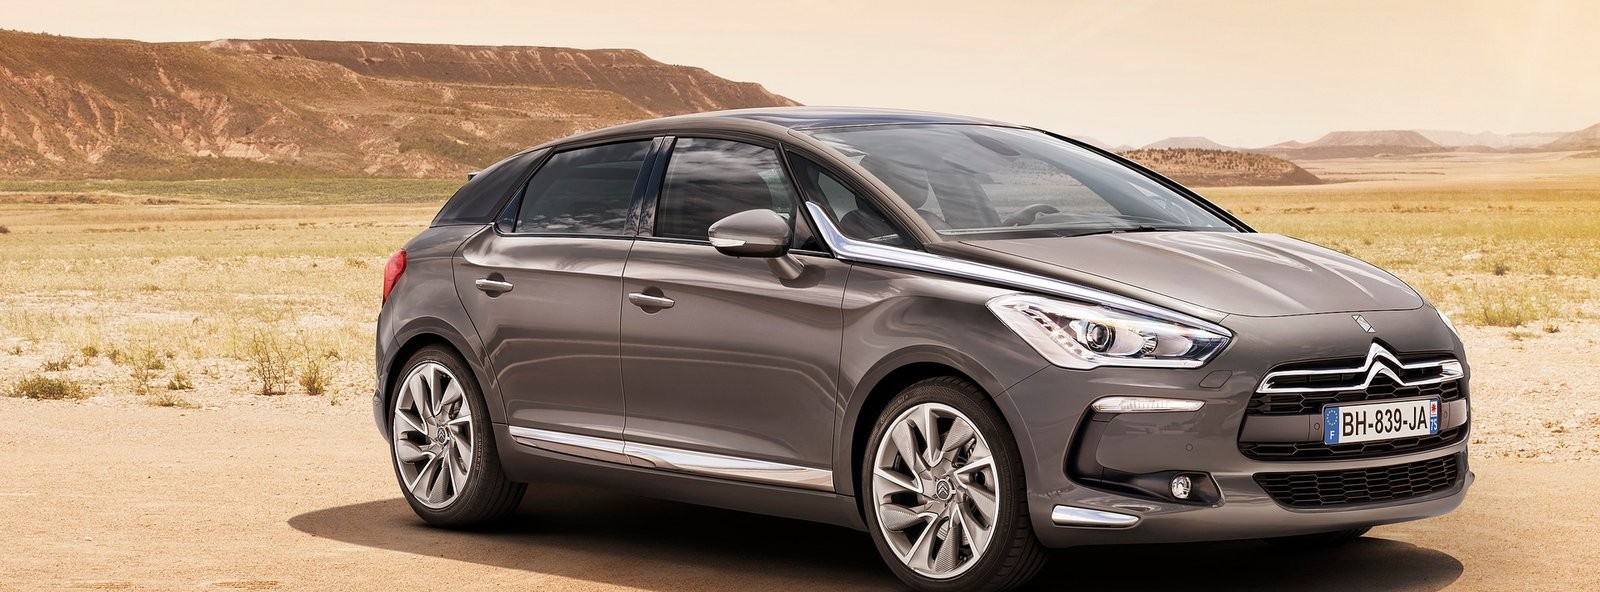 Citroen-DS5_2012_1600x1200_wallpaper_04